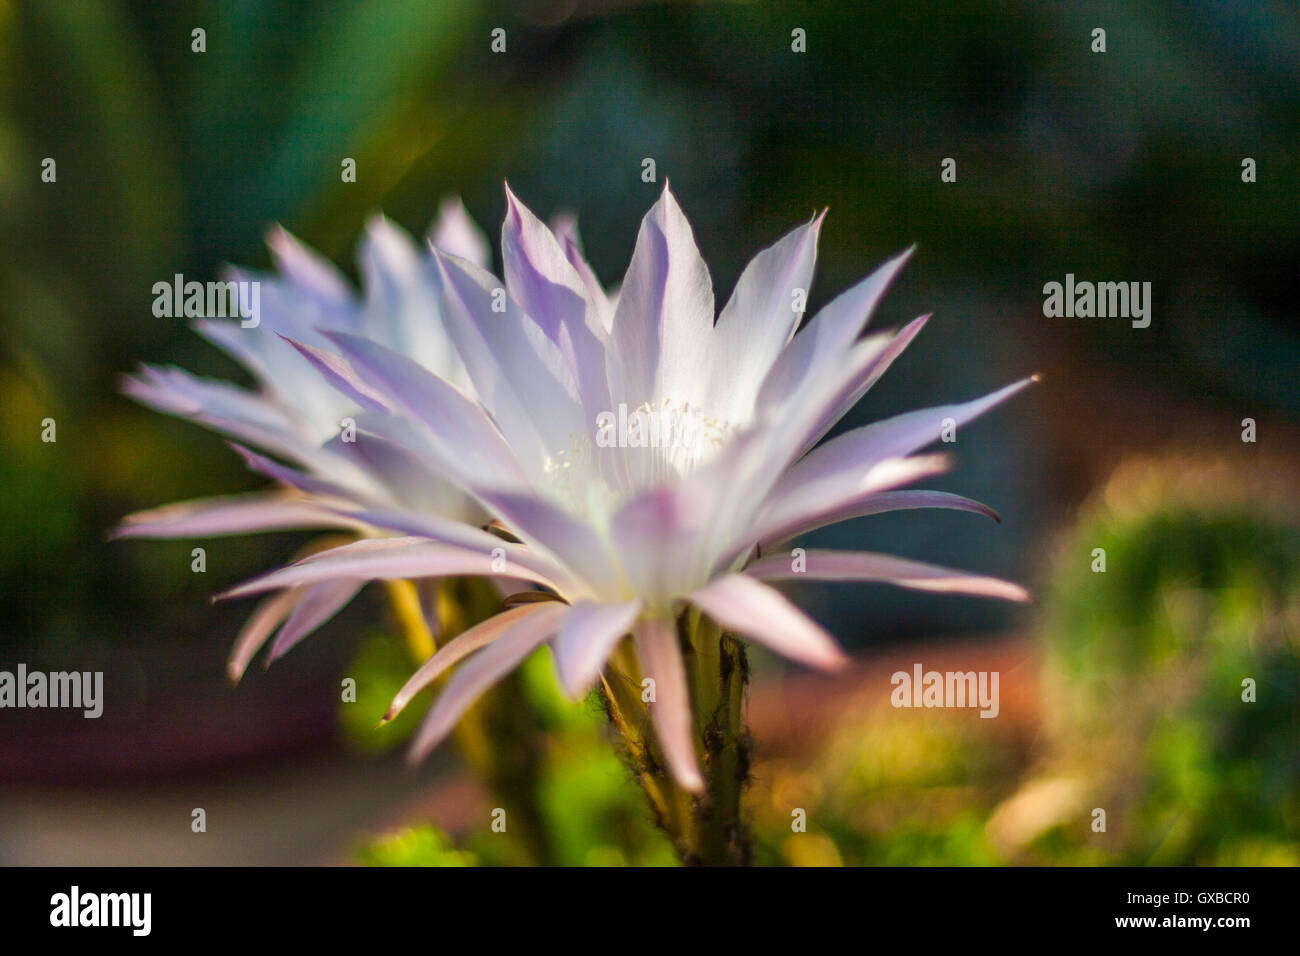 It shows a very rare cactus flower, that only opens up for 2 days - Stock Image